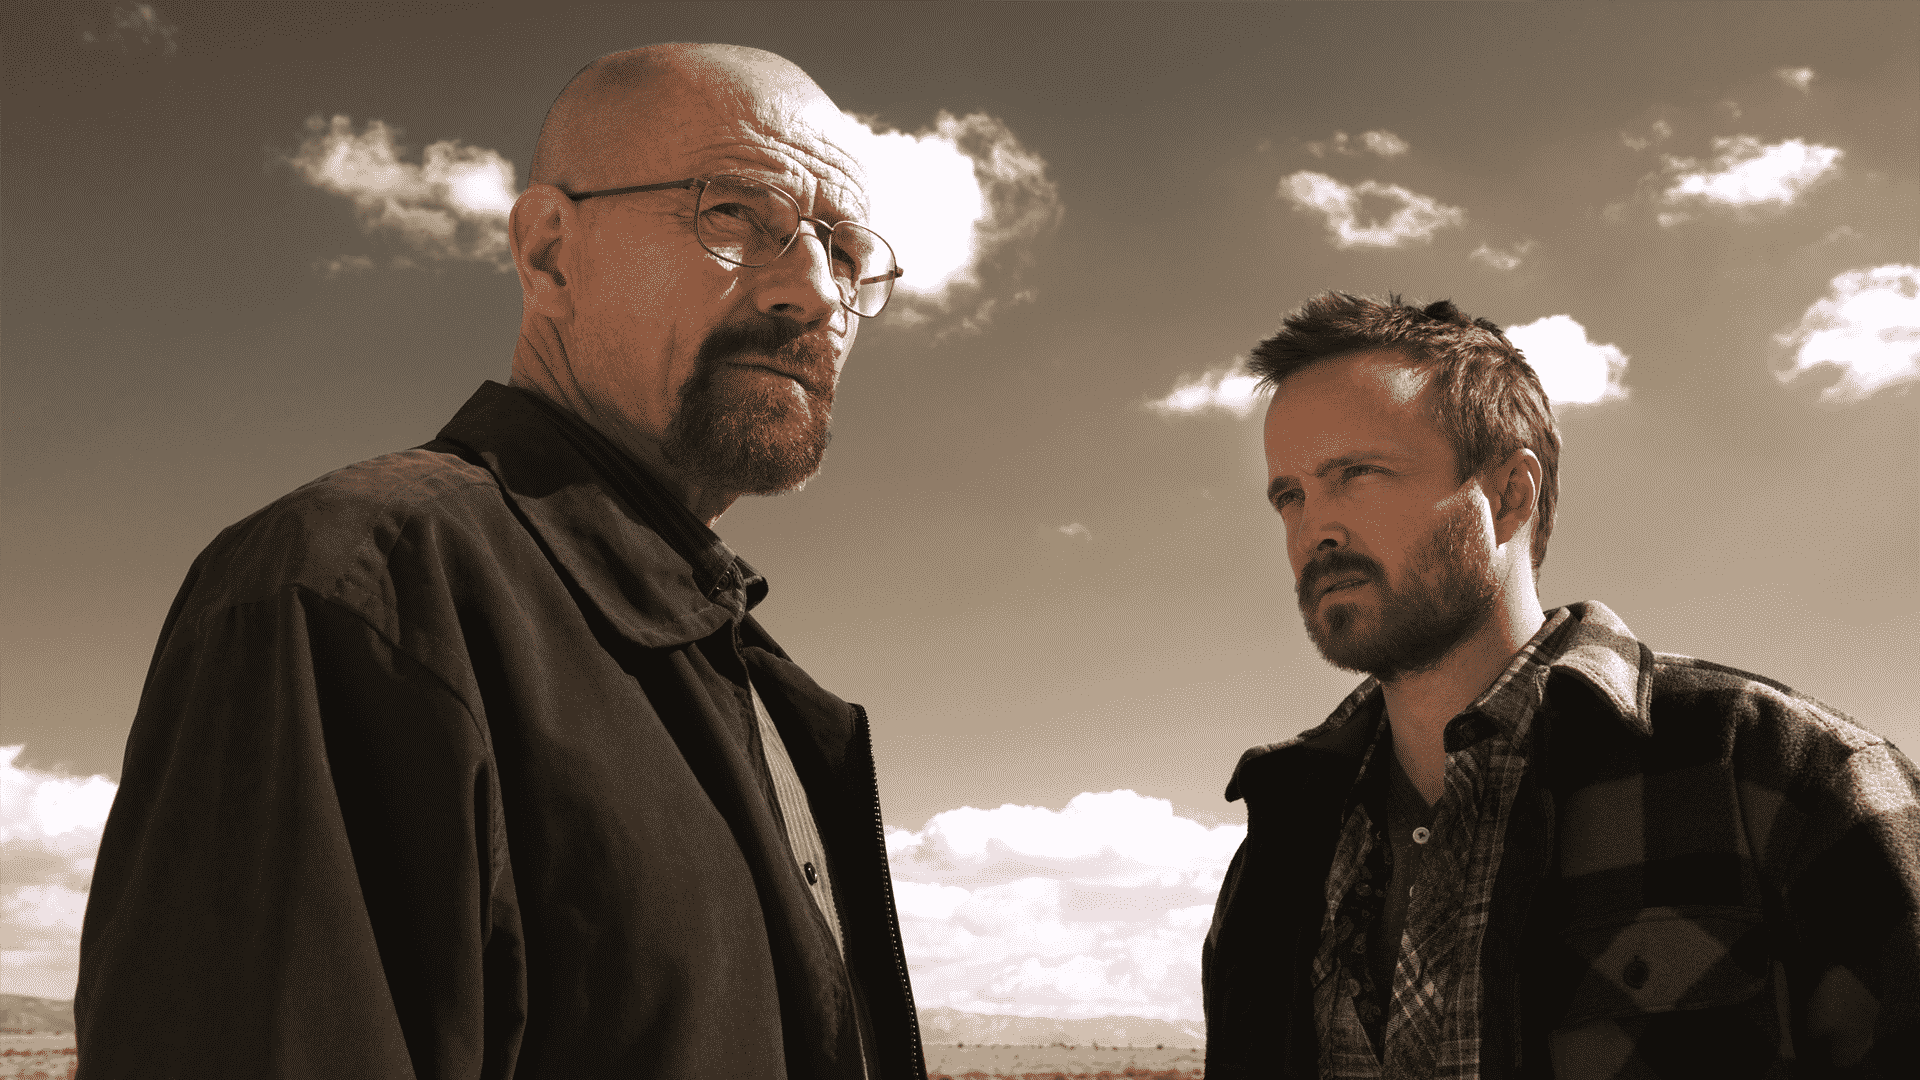 breking bad film jesse pinkman aaron paul walter white bryan cranston